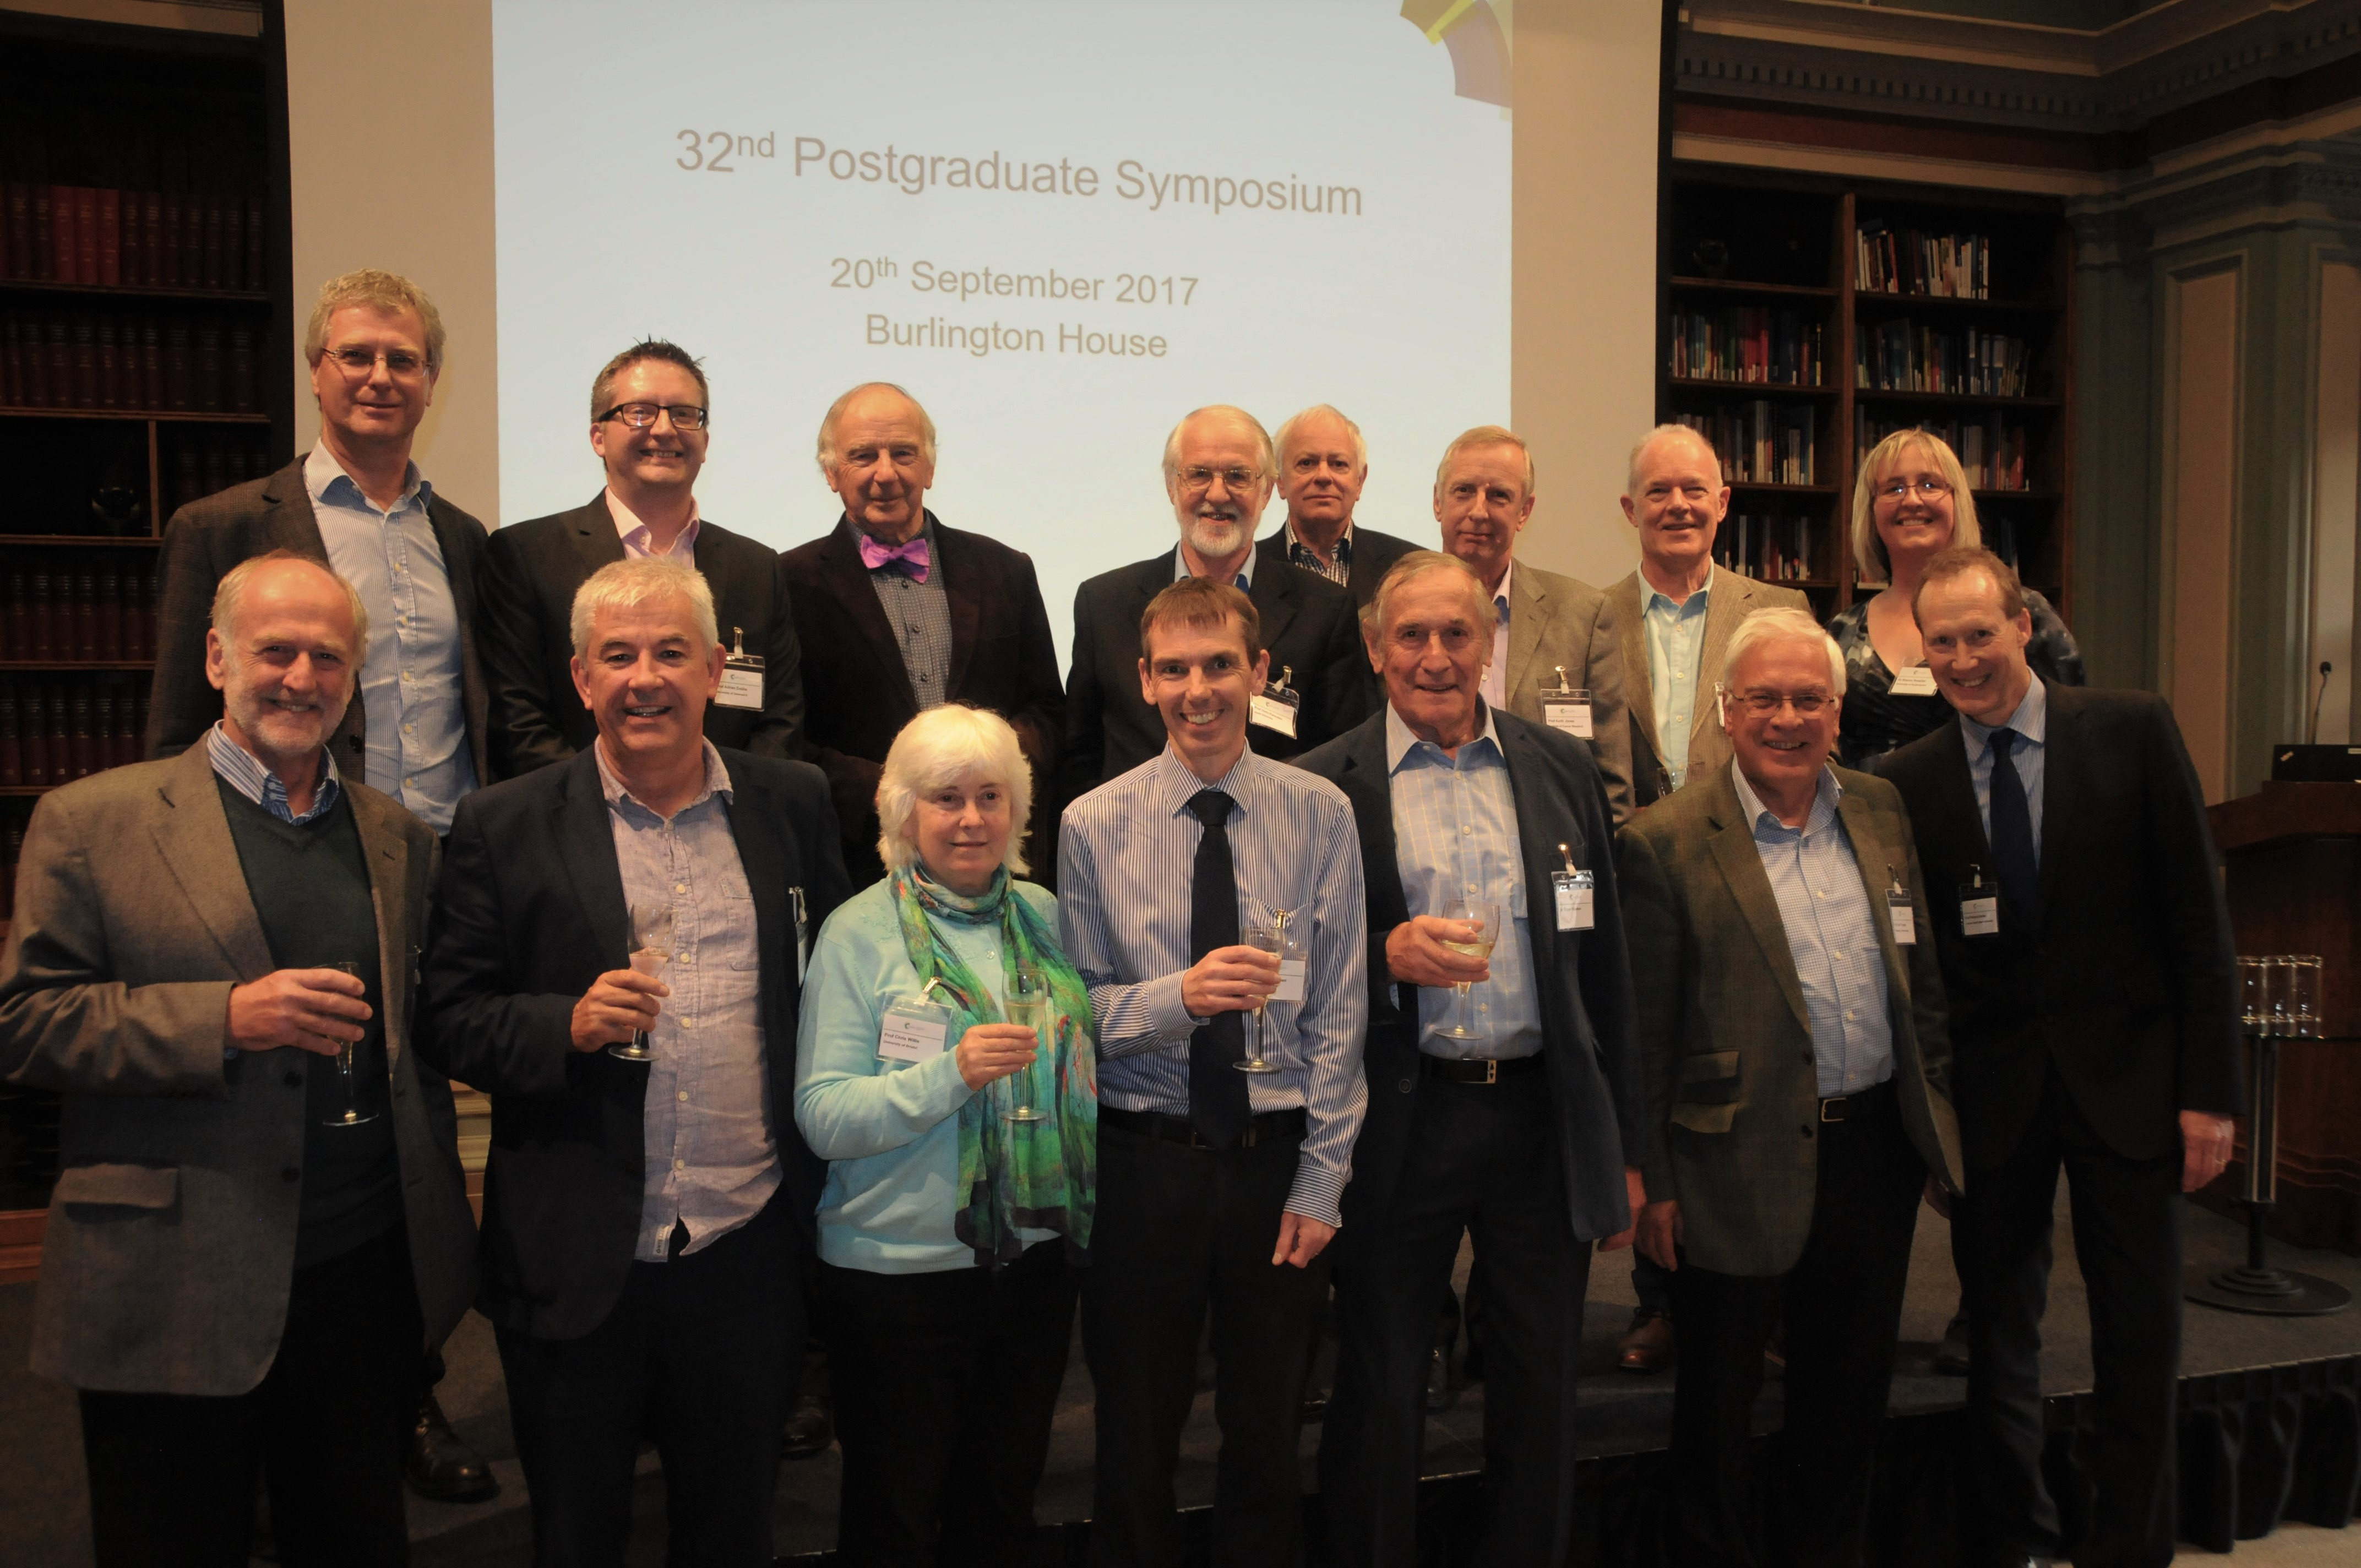 The Heterocyclic and Synthesis Group celebrates 50 years with a gathering of 15 of Chairs and Secretaries of the group.